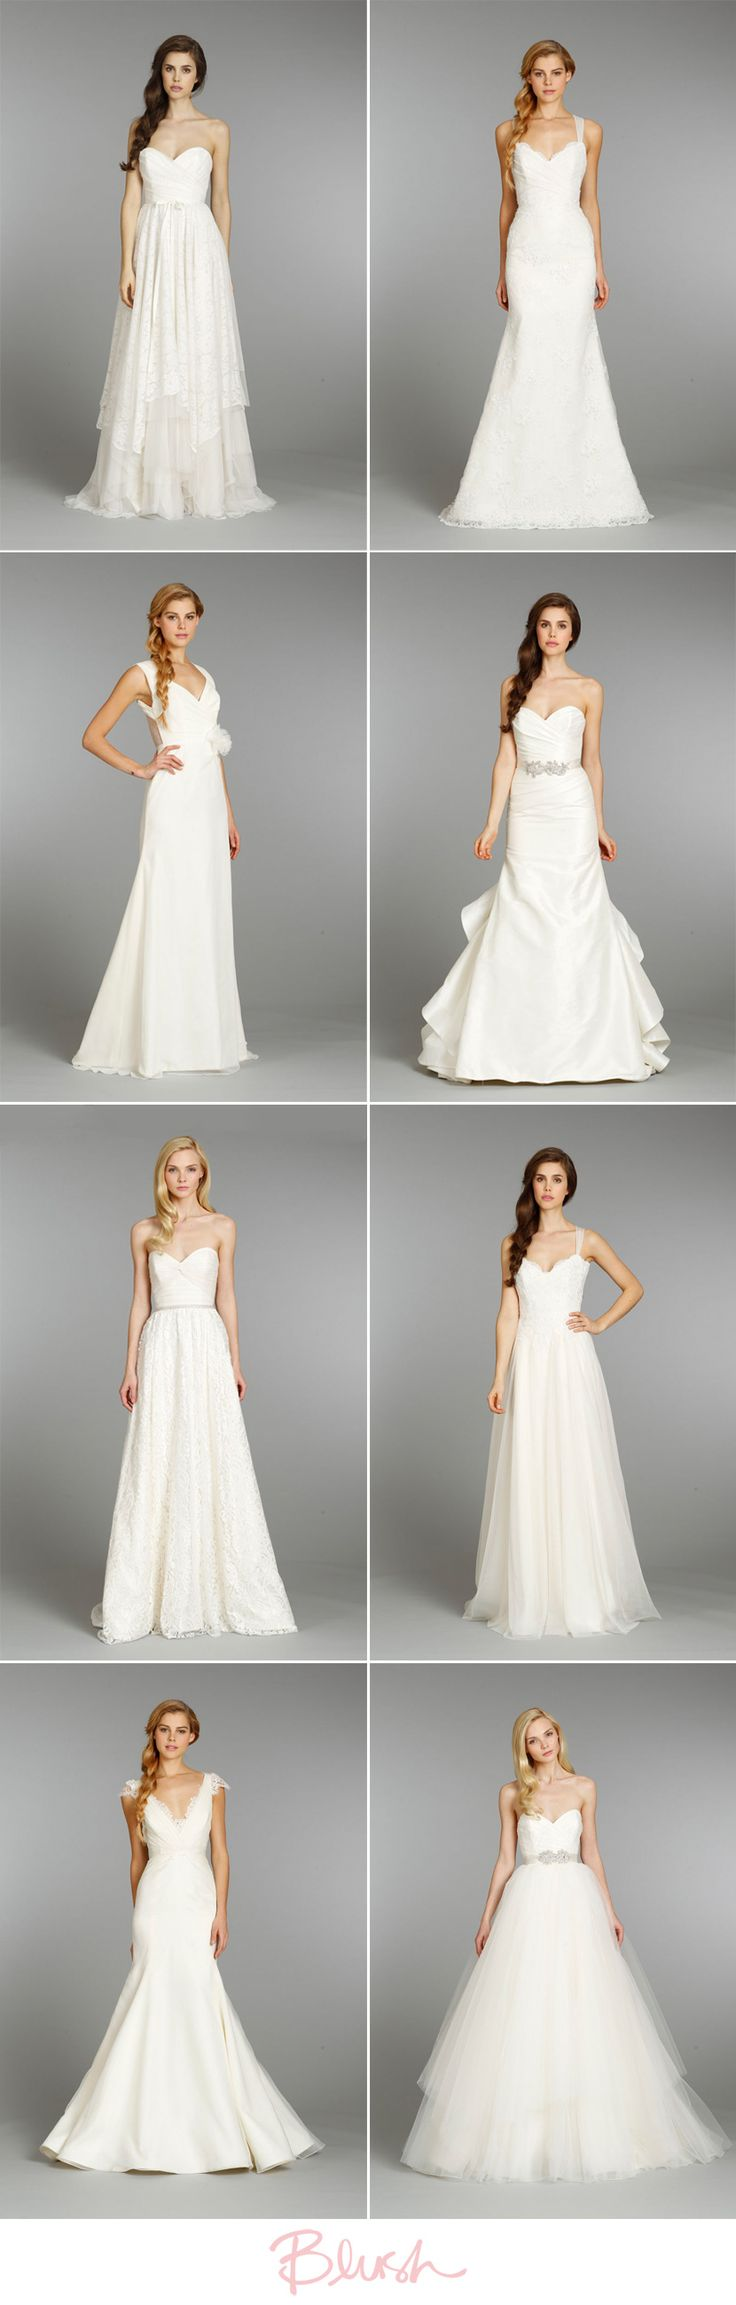 Jim Hjelm Blush Fall 2013 Collection i want the 1st, 5th, or 6th. So pretty!